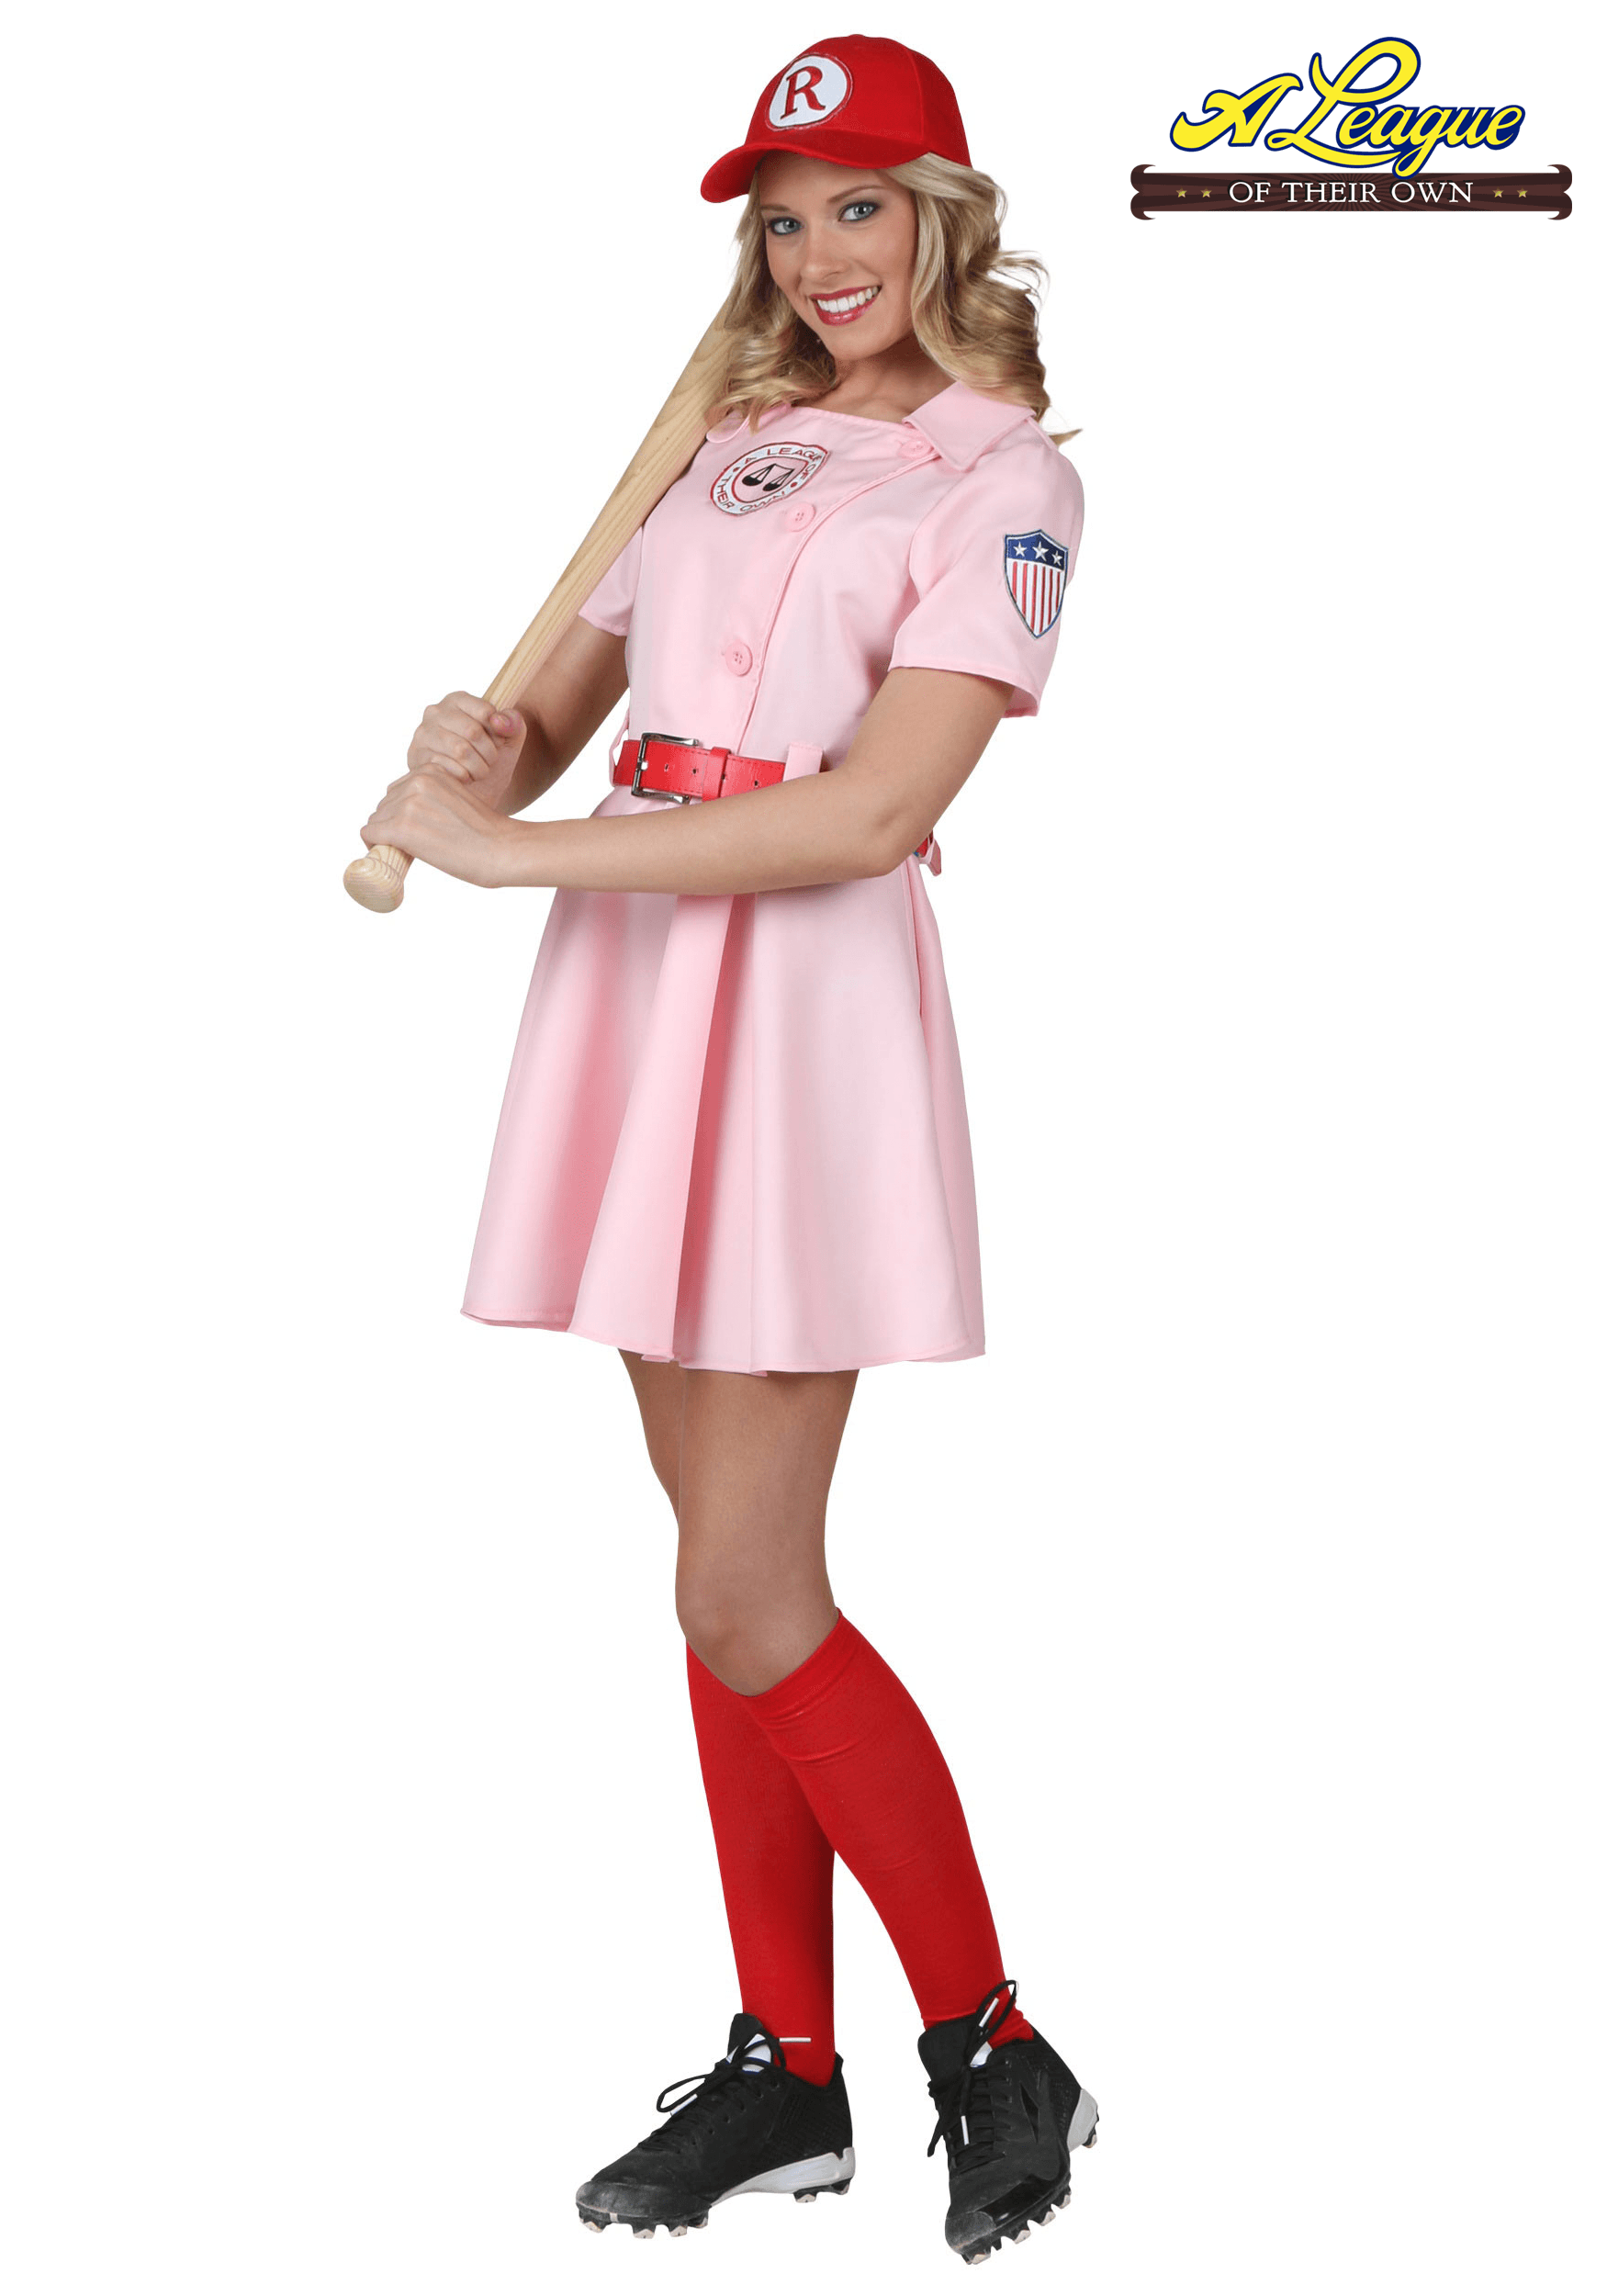 Sports halloween costumes uniforms halloweencostumes womens a league of their own dottie costume solutioingenieria Images